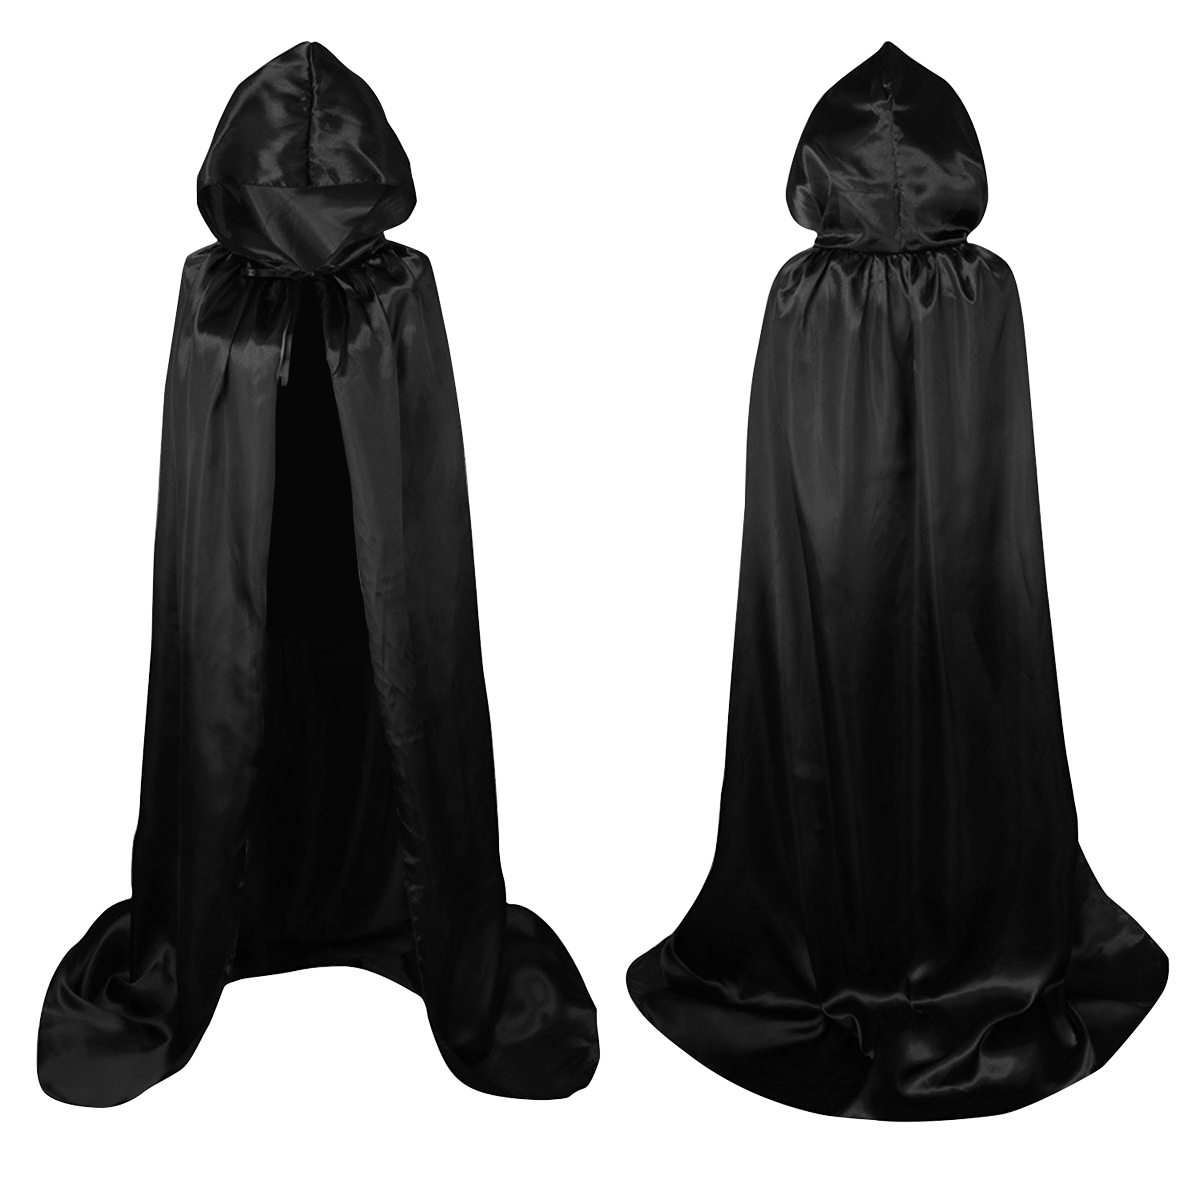 Vampire Capes, Hooded Capes & Hooded Robes to Complete Your Character. Without your full-length vampire cape, your vampire pose falls flat — gone is the dark air .